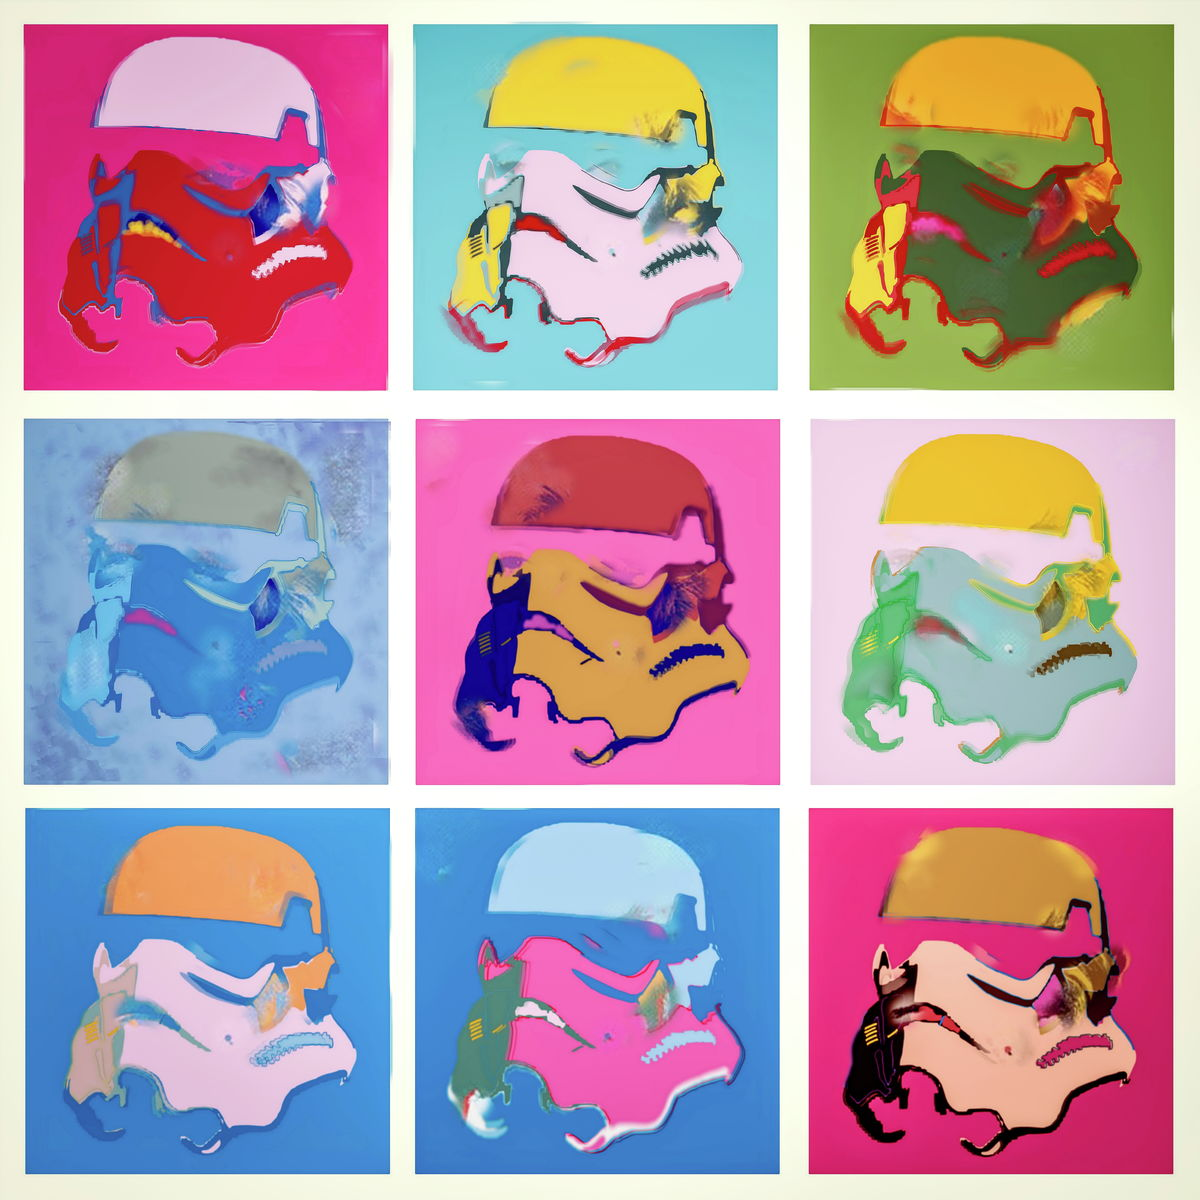 Icons. Star Wars, digital color photography manipulated, Popart style. Art Poster Print